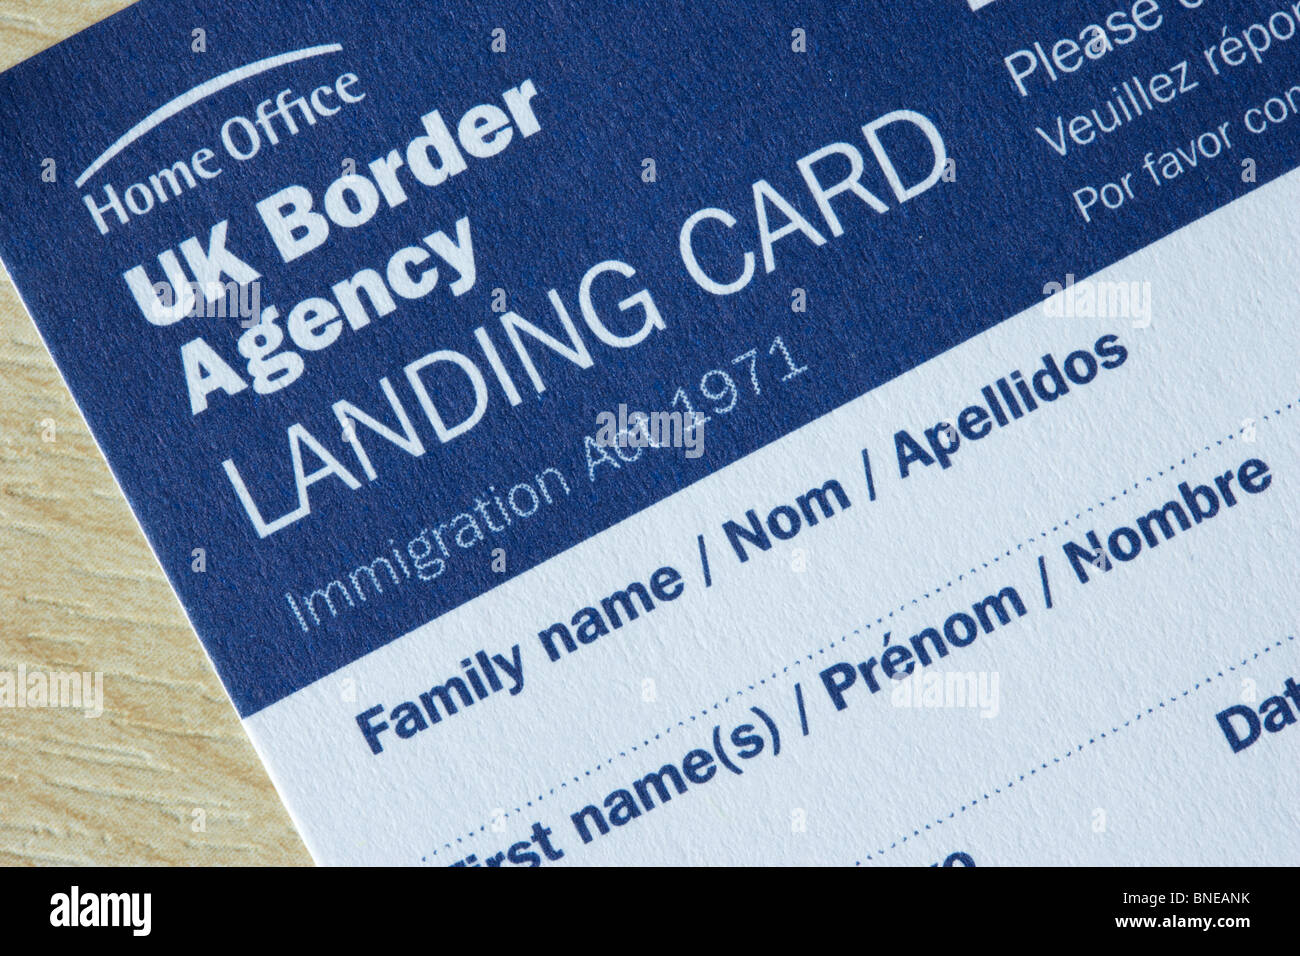 UK border agency landing card immigration form - Stock Image